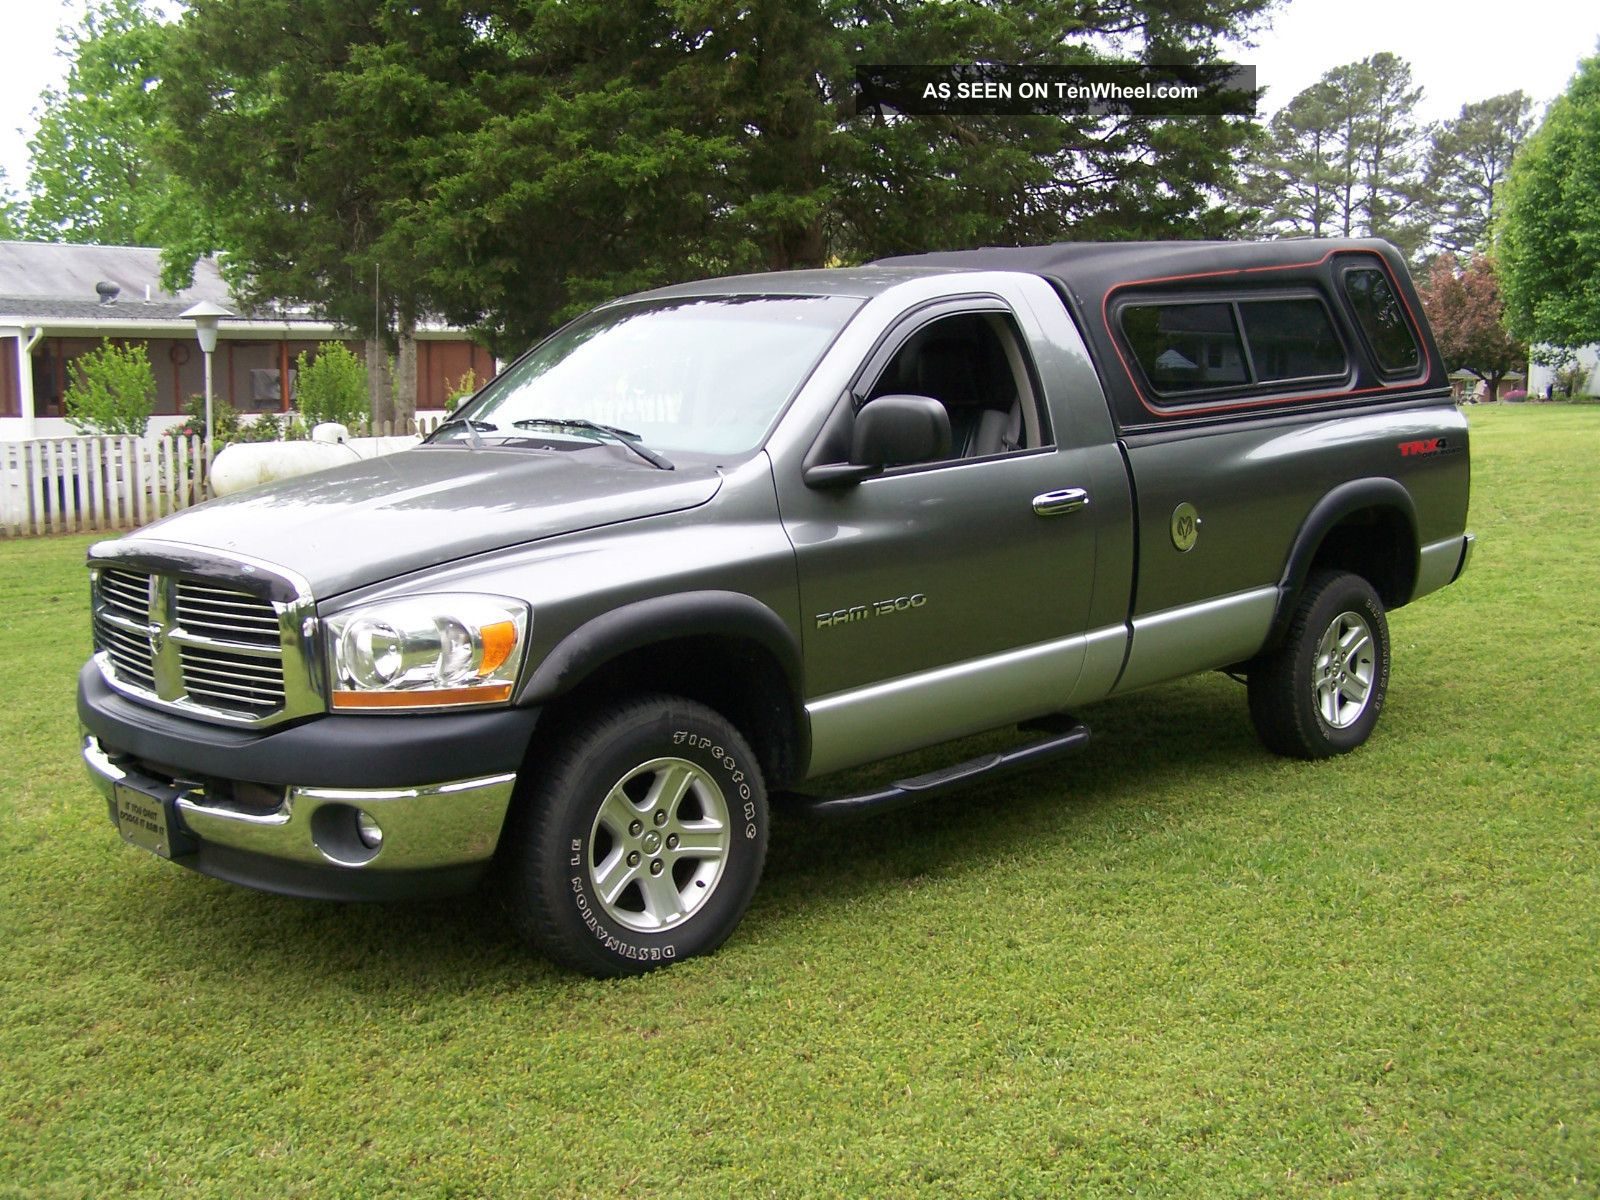 2006 dodge ram 1500 trx4 standard cab pickup 2 door 4 7l ram 1500. Black Bedroom Furniture Sets. Home Design Ideas